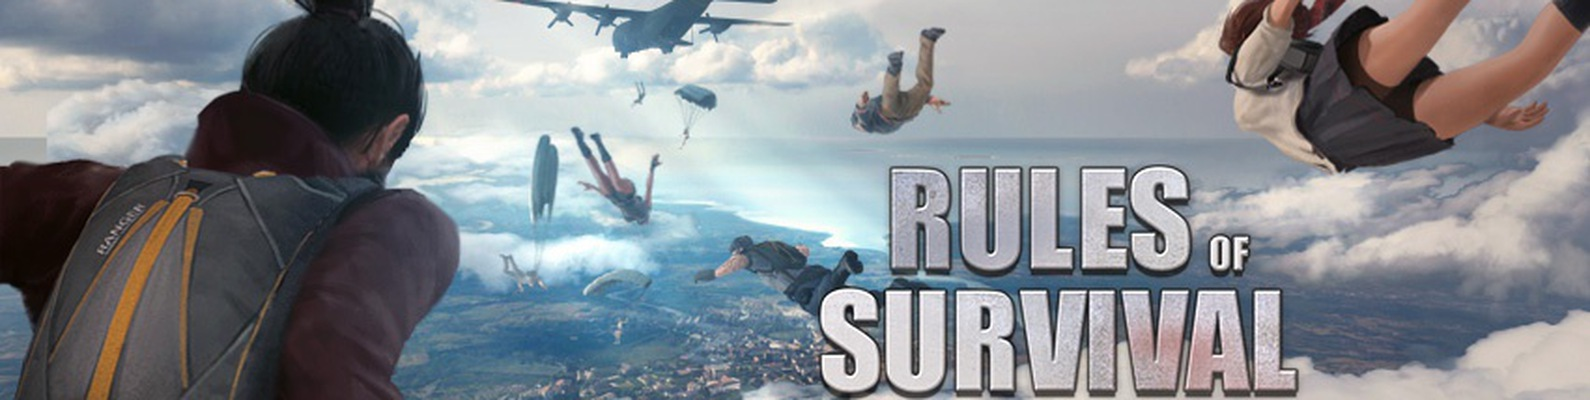 rules of survival Rules of survival (ros) is an online multiplayer battle royale game developed by netease games it claims to have more than 100 million players worldwide.